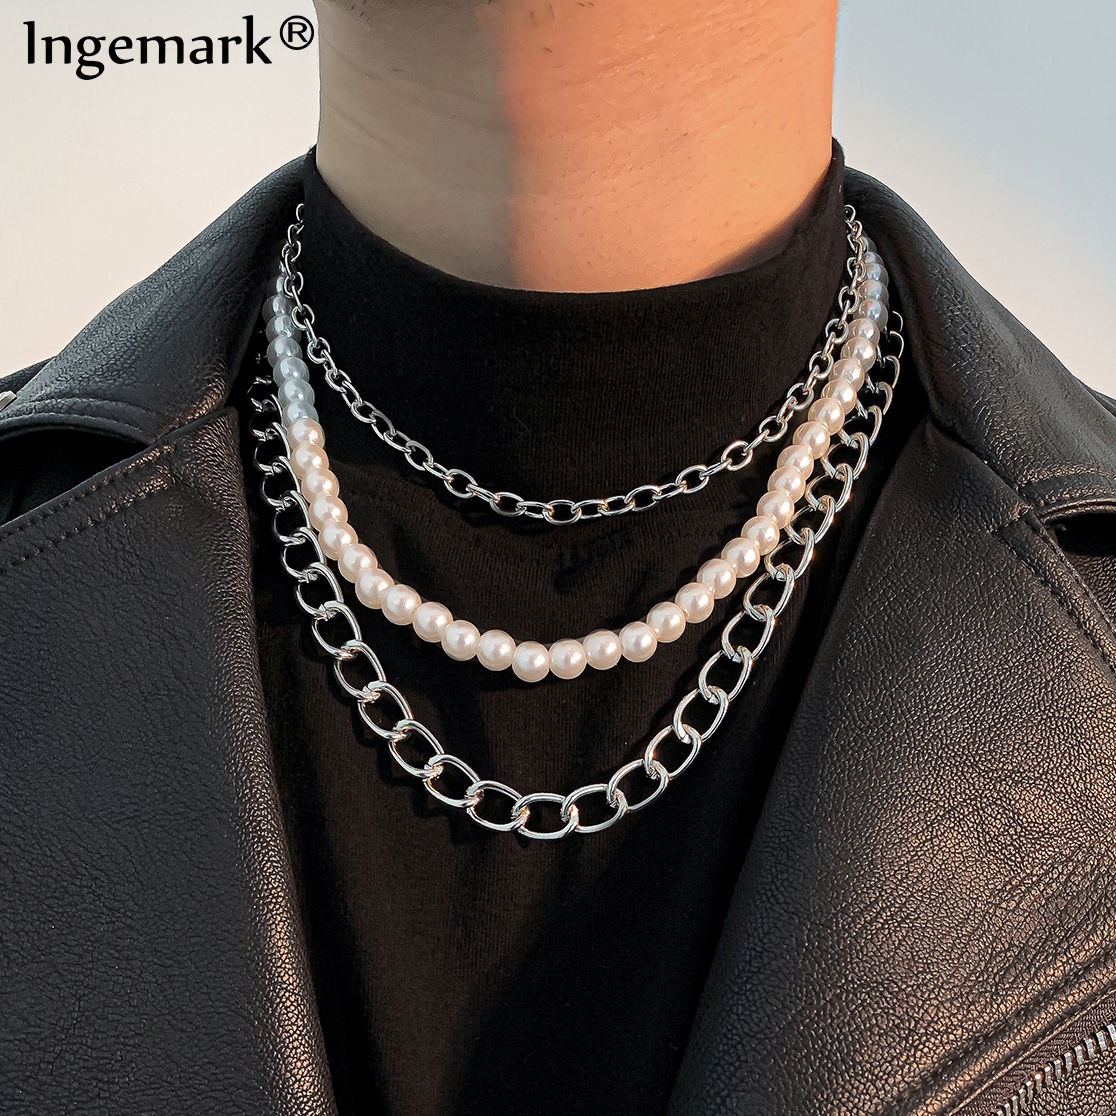 Silver chain necklace with pearl pearl necklace silver chain choker with pearl silver pearl choker.